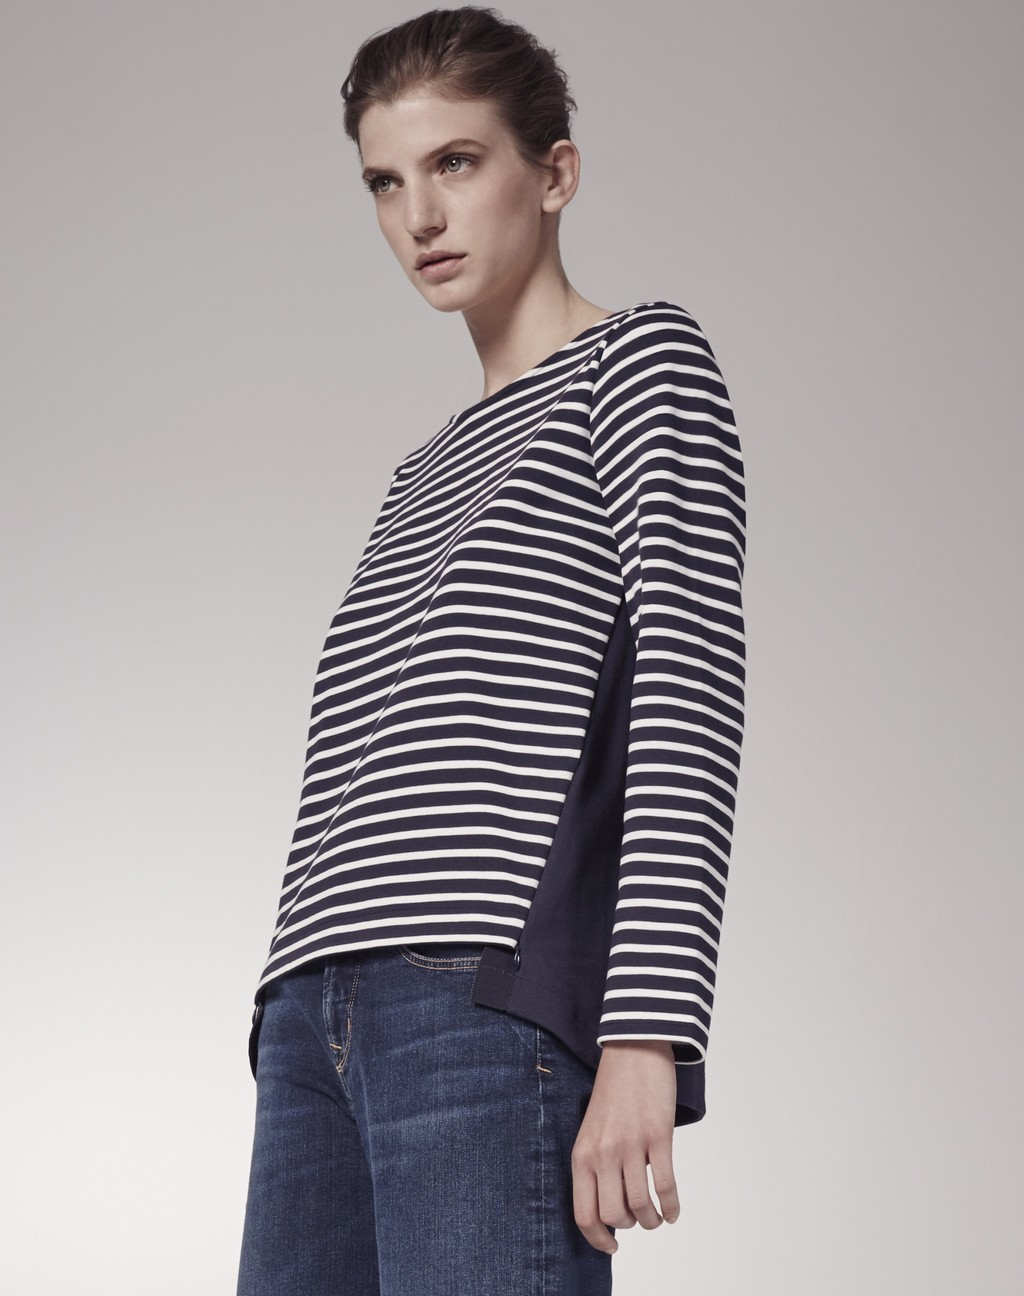 Boxy Breton Top Navy/White - pattern: horizontal stripes; secondary colour: white; predominant colour: navy; occasions: casual; length: standard; style: top; fibres: cotton - 100%; fit: loose; neckline: crew; sleeve length: long sleeve; sleeve style: standard; pattern type: fabric; pattern size: standard; texture group: jersey - stretchy/drapey; multicoloured: multicoloured; season: s/s 2016; wardrobe: basic